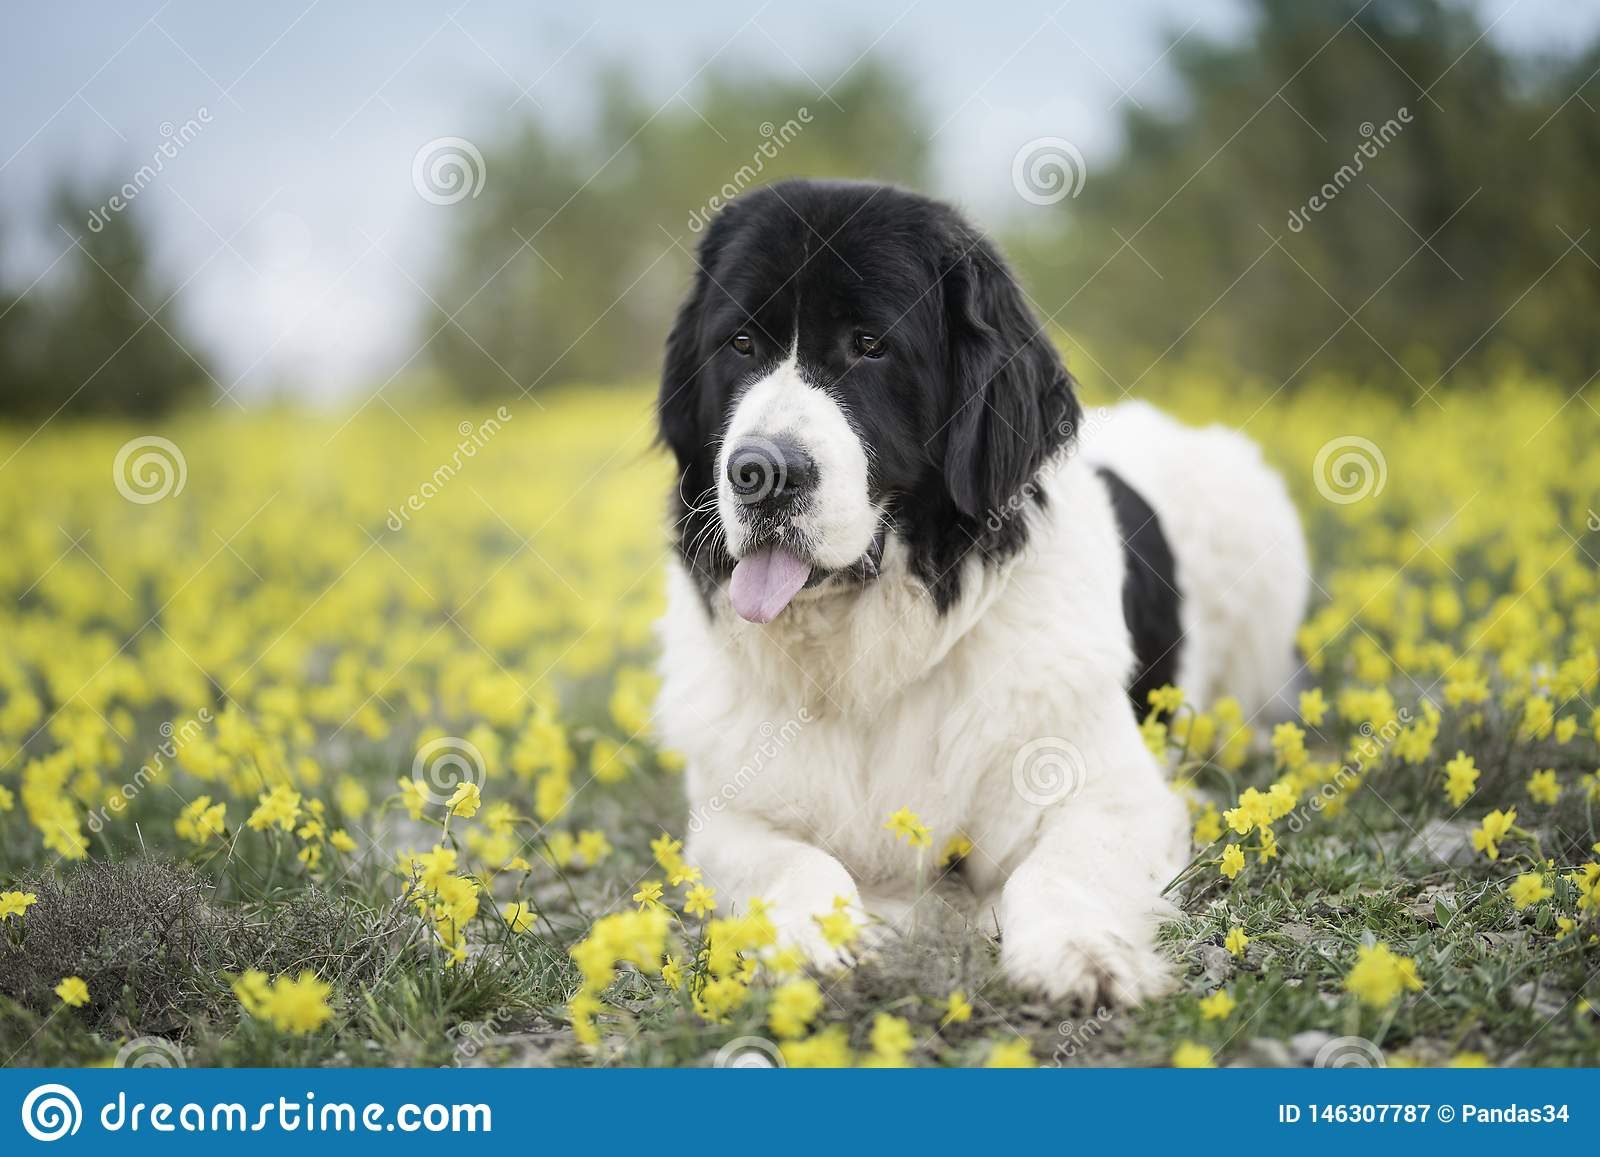 Landseer dog pure breed playing fun lovely puppy